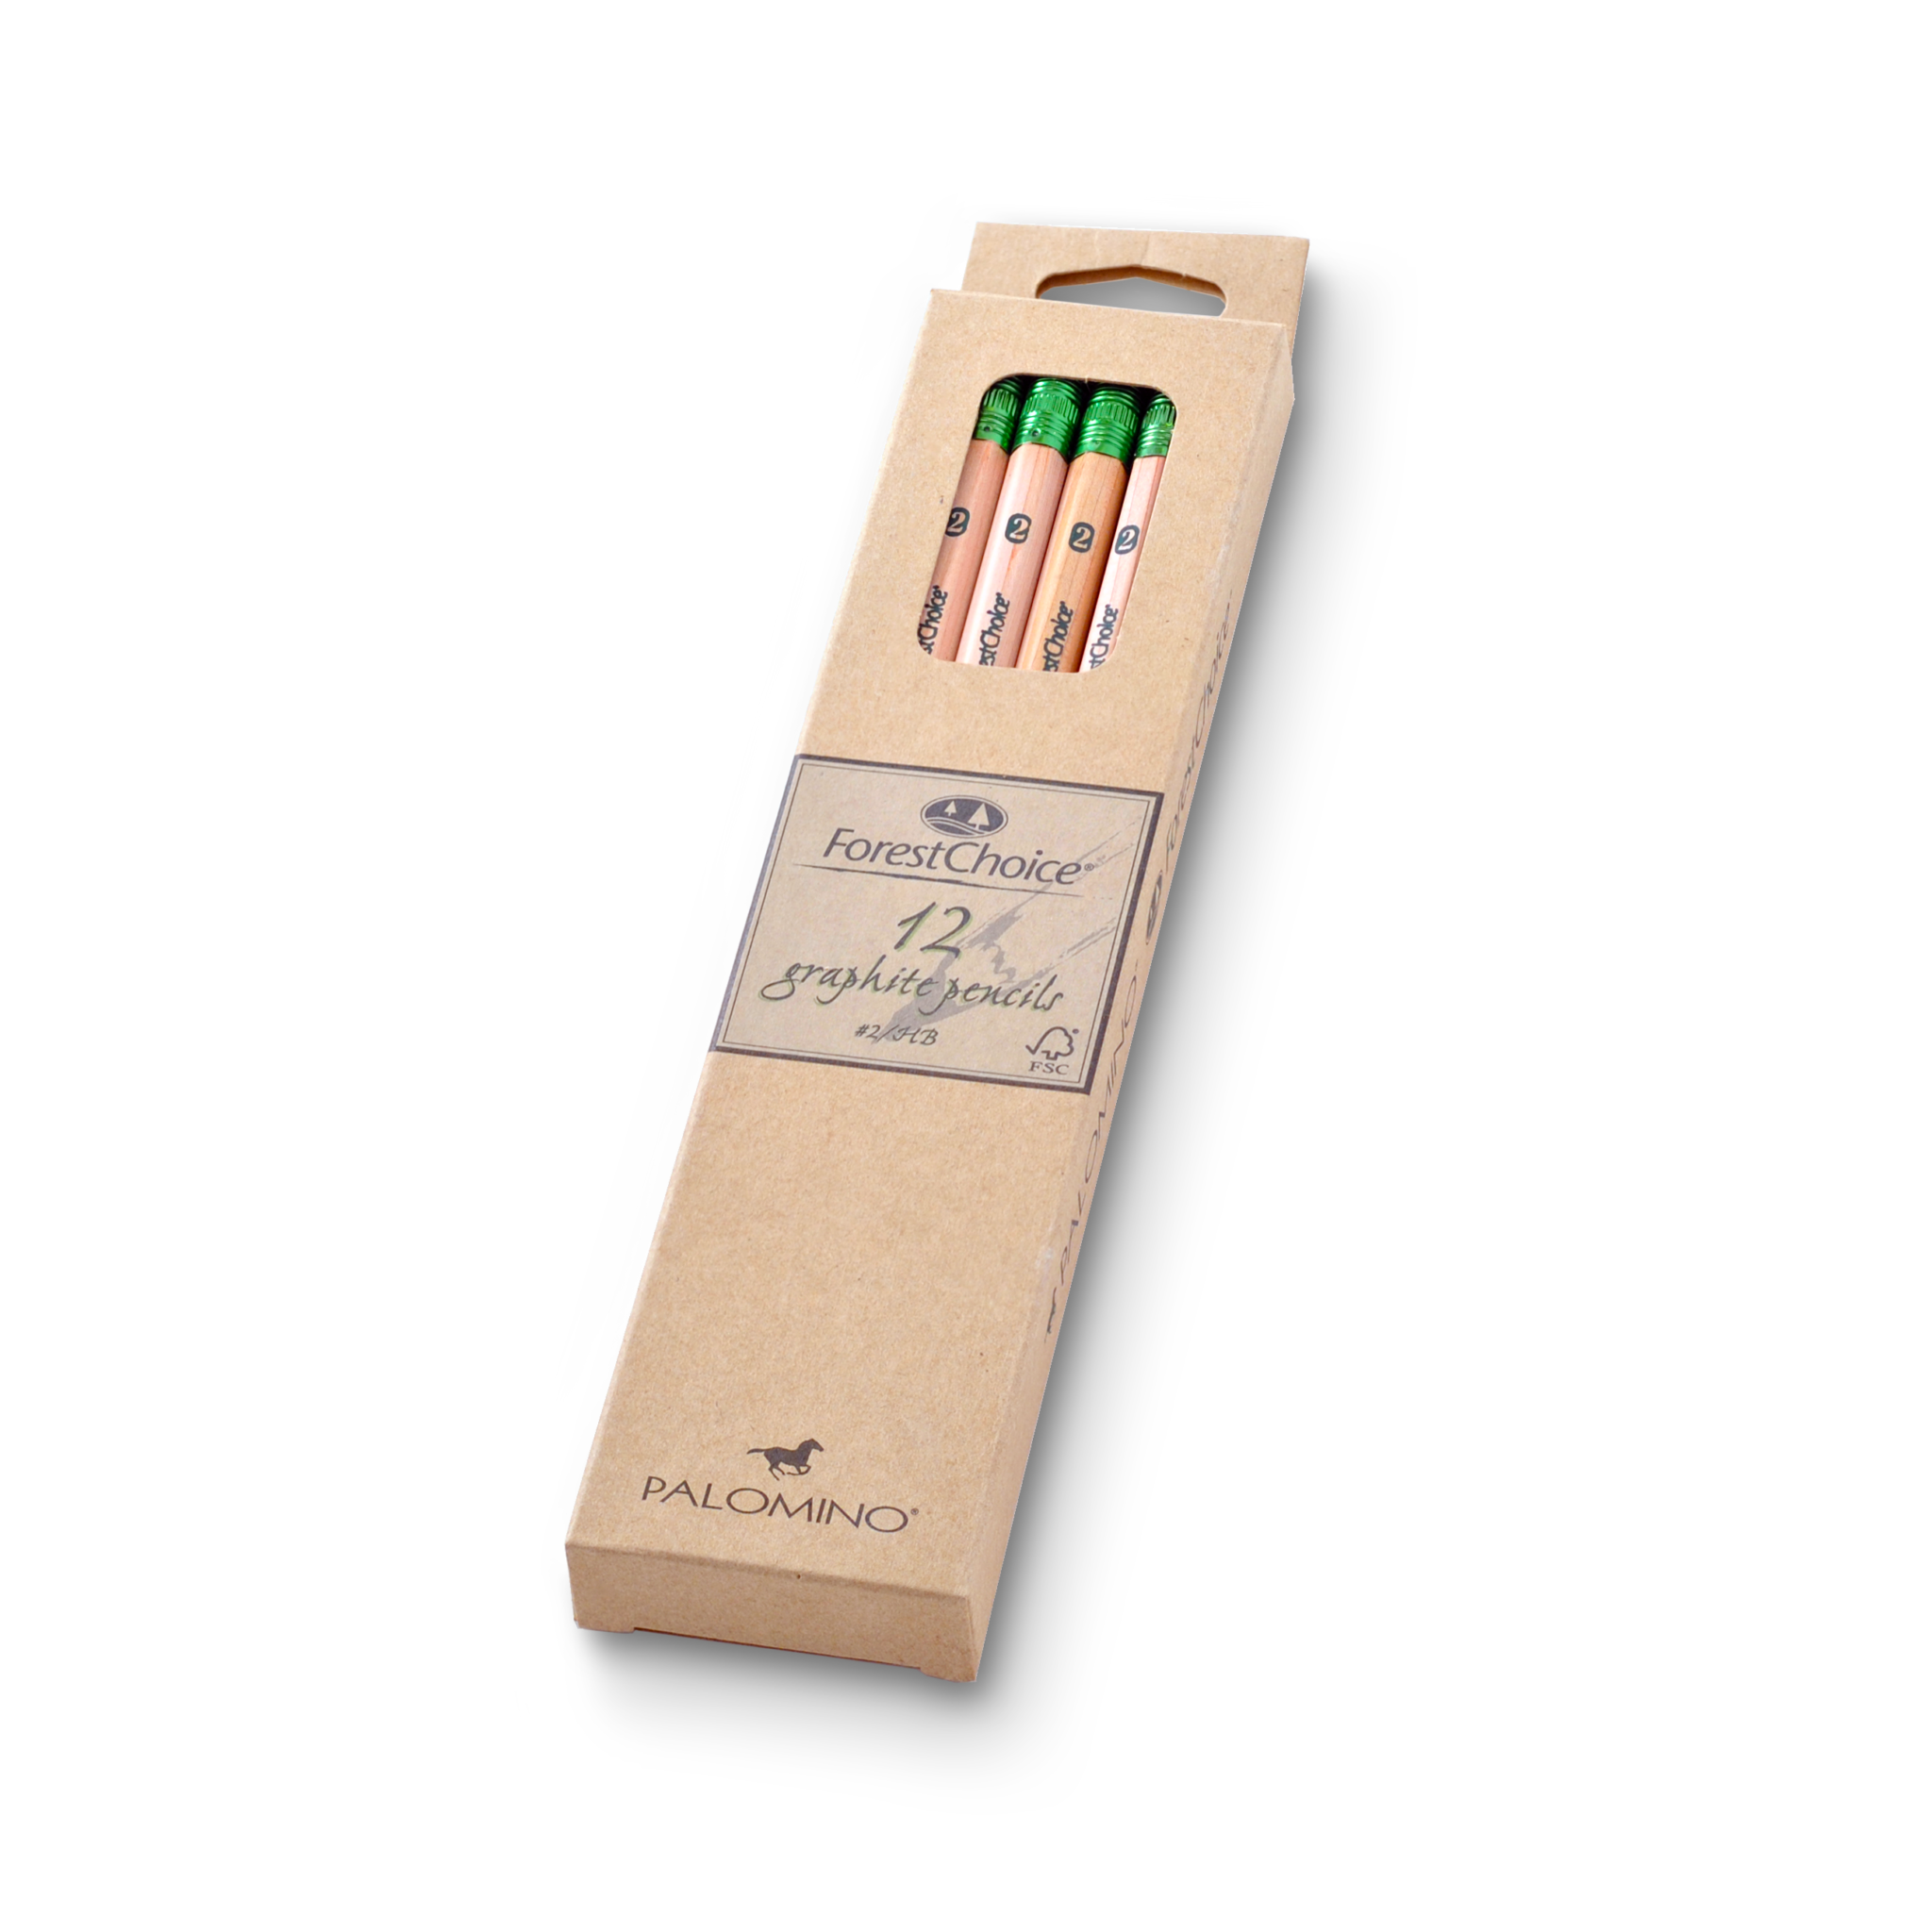 Colouring pencils for adults reviews - Forestchoice 2 Graphite Pencils 12 Pack